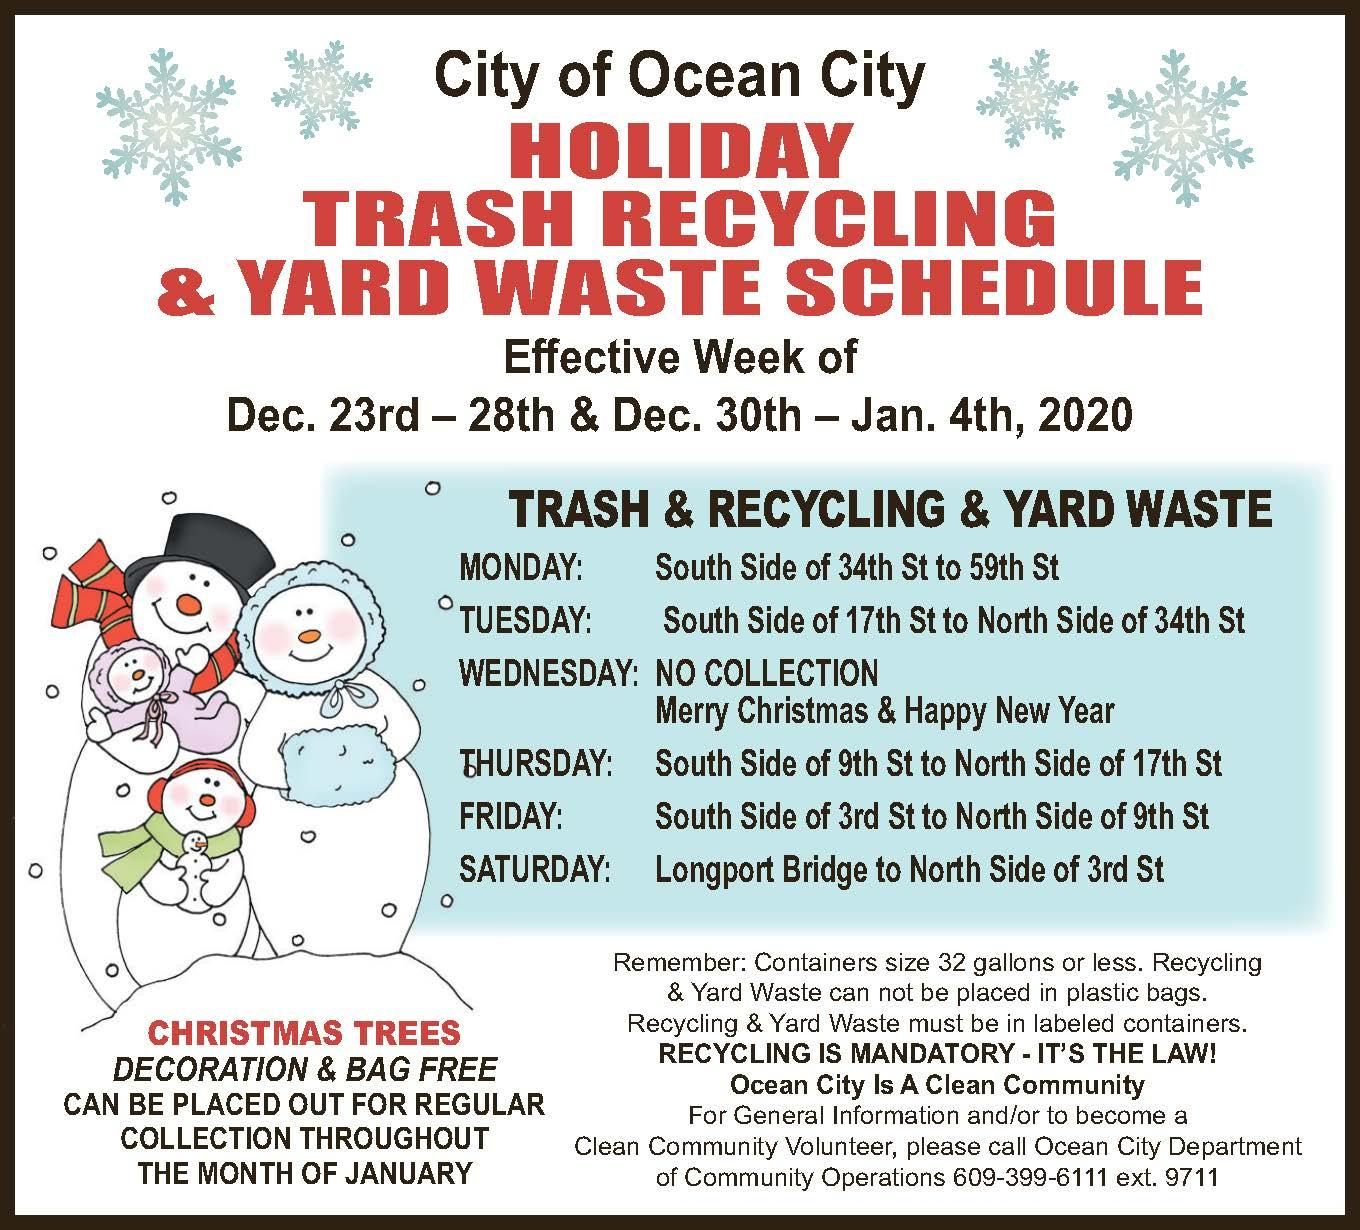 Trash Pickup Schedule Christmas 2020 Holiday Trash and Recycling Pickup Schedule